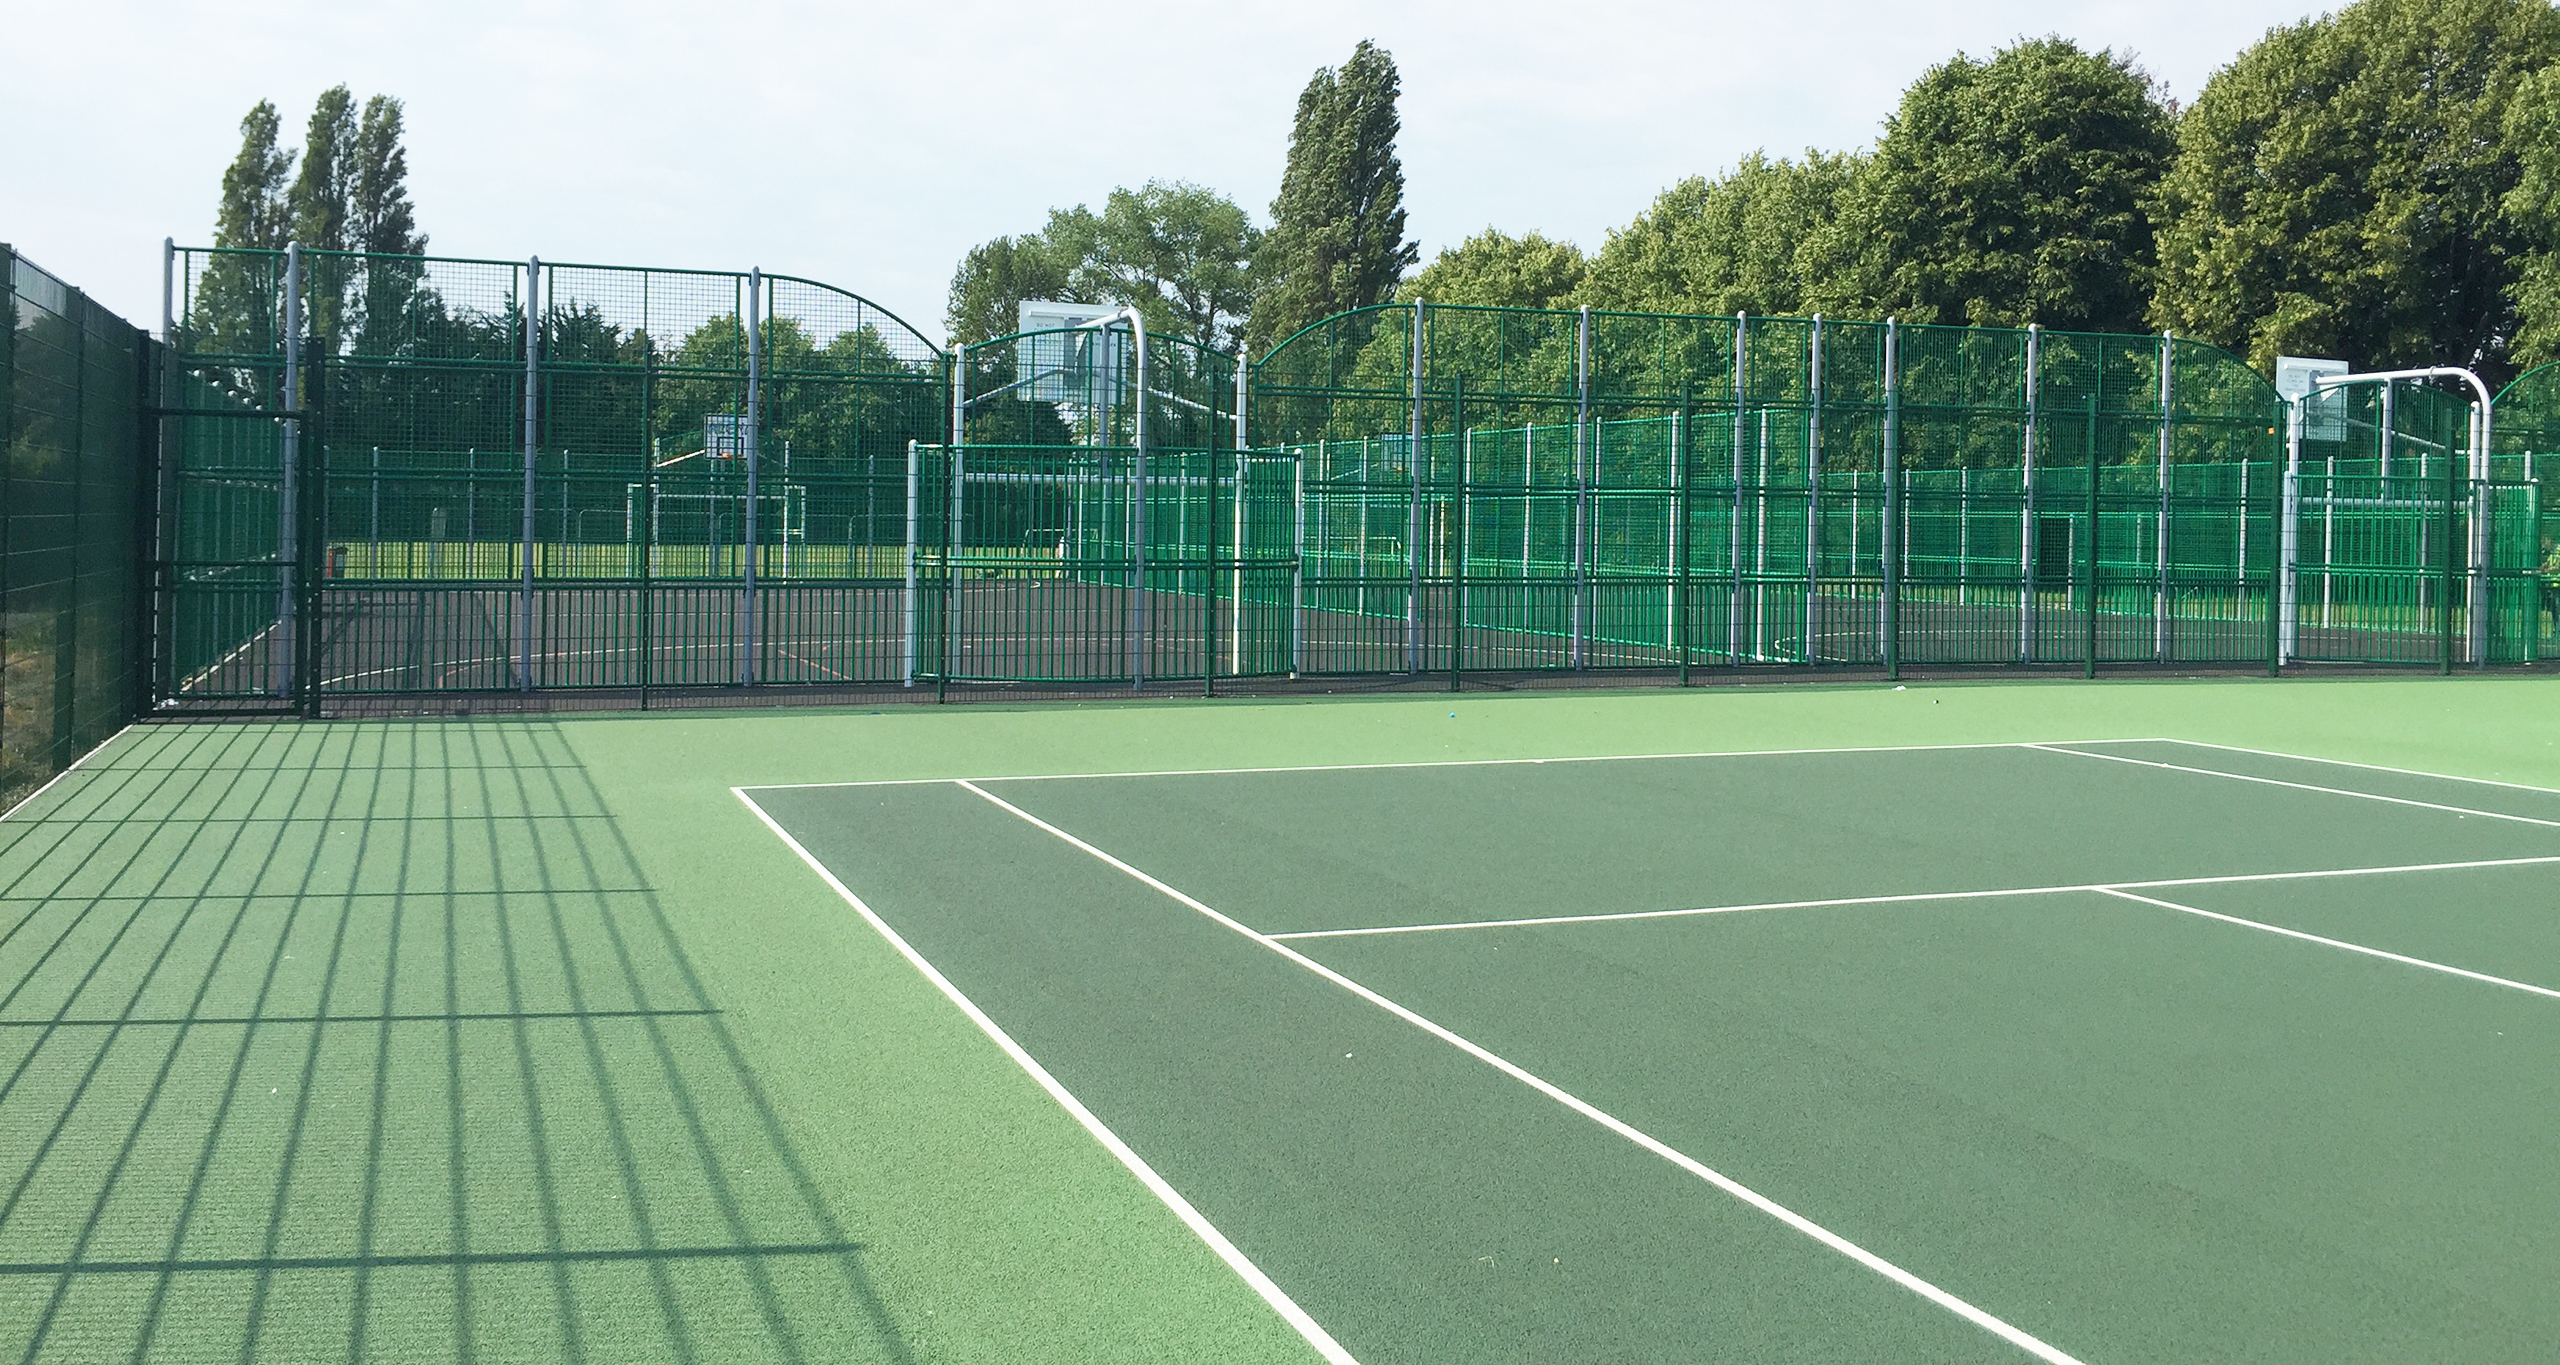 Multi Use Games Area, MUGA, synthetic hockey pitch